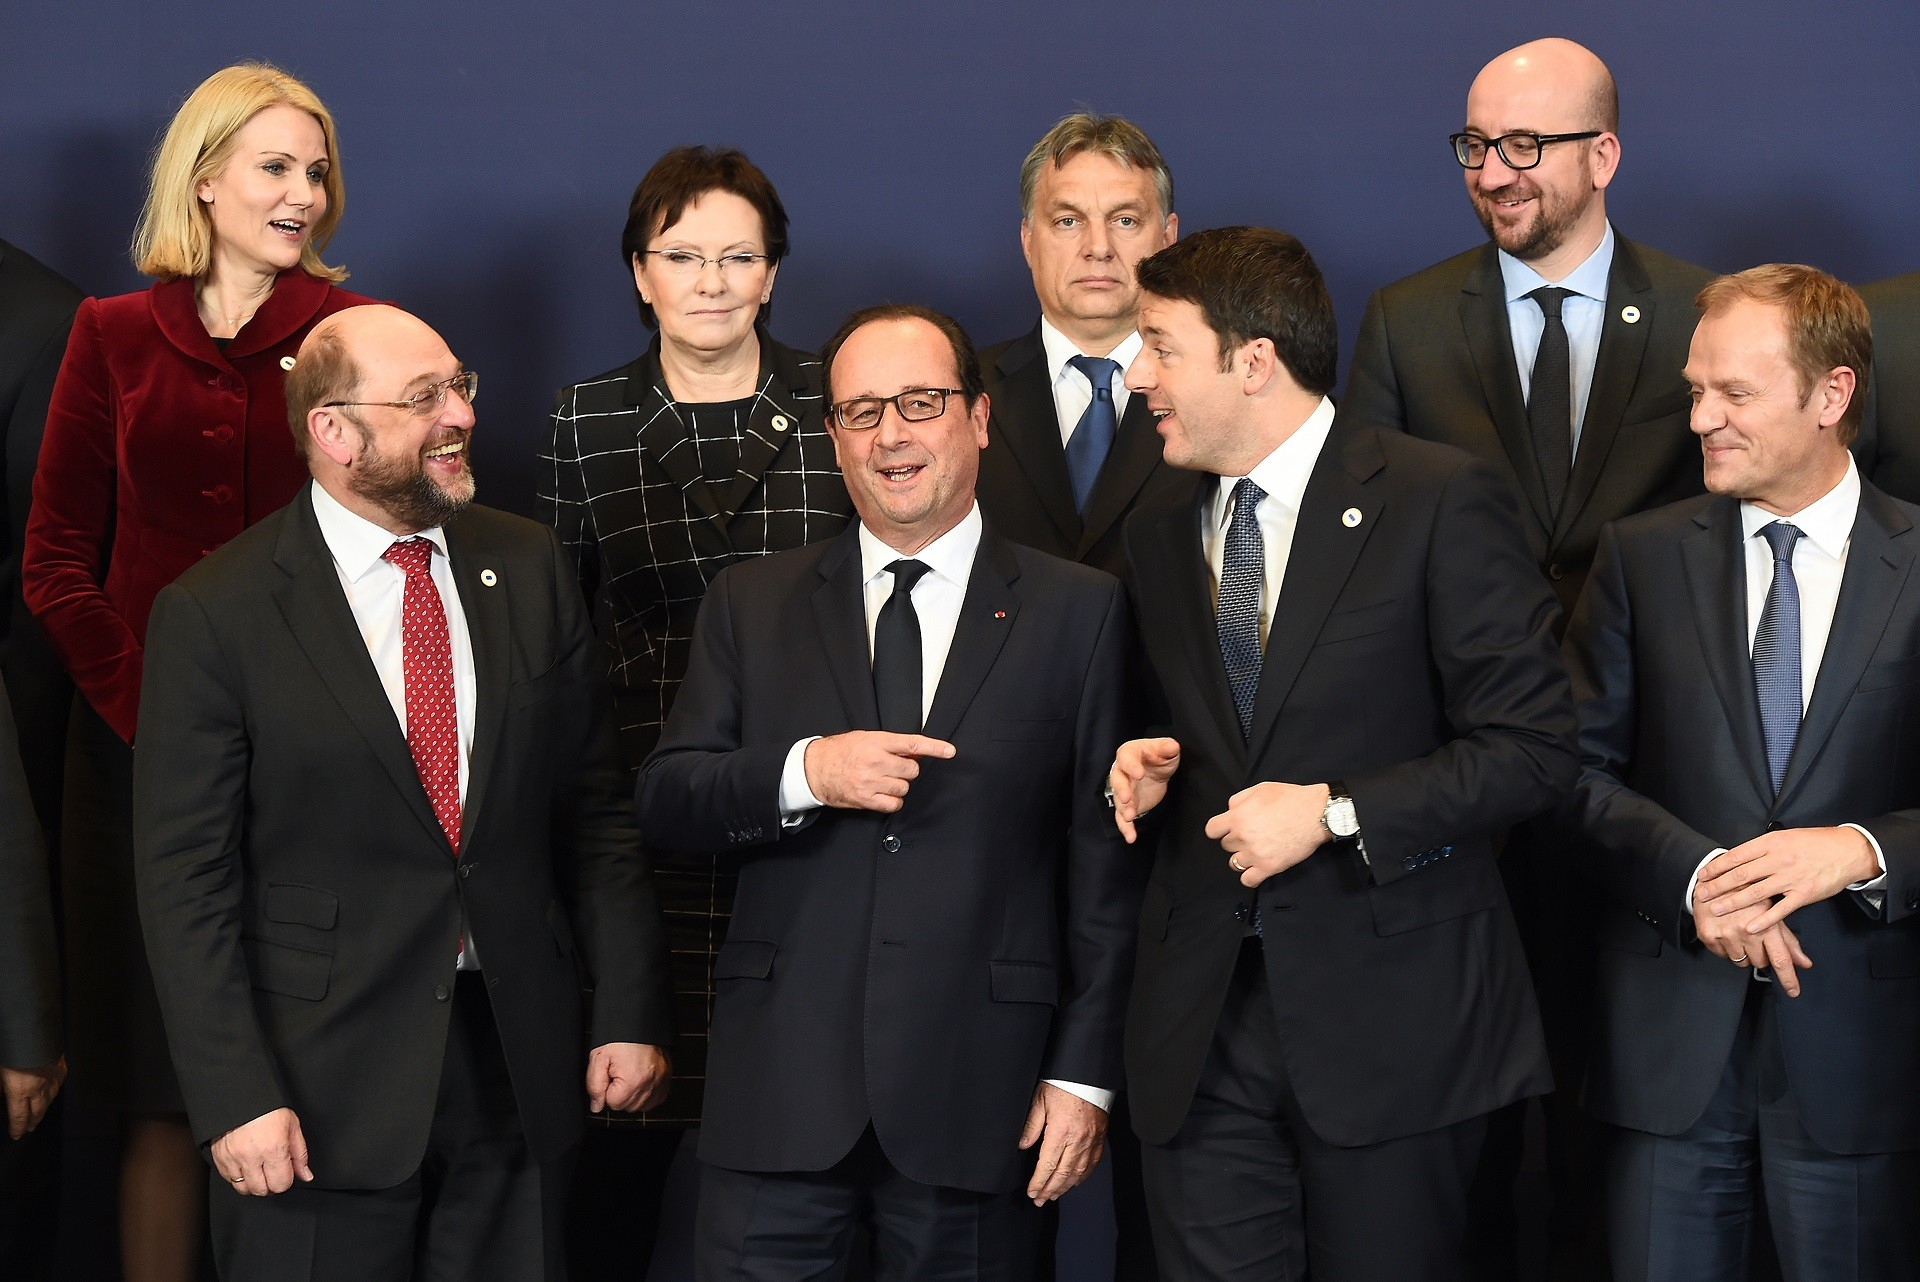 """(L-R) Danish Prime Minister  Helle Thorning-Schmidt, European Parliament President  Martin Schulz, Polish Prime Minister Ewa Kopacz, French President  Francois Hollande, Hungarian Prime Minister  Viktor Orban, Italian Prime Minister  Matteo Renzi, Belgian Prime Minister Charles Michel and European Council President Donald Tusk pose for a family photo during a European Council meeting in Brussels, December 18, 2014.   European Union leaders urged Vladimir Putin to make a """"radical change"""" in his stance on Ukraine Thursday as they boosted sanctions against Crimea despite fears of economic blowback from Russia's spiralling financial crisis.  AFP PHOTO/EMMANUEL DUNAND"""